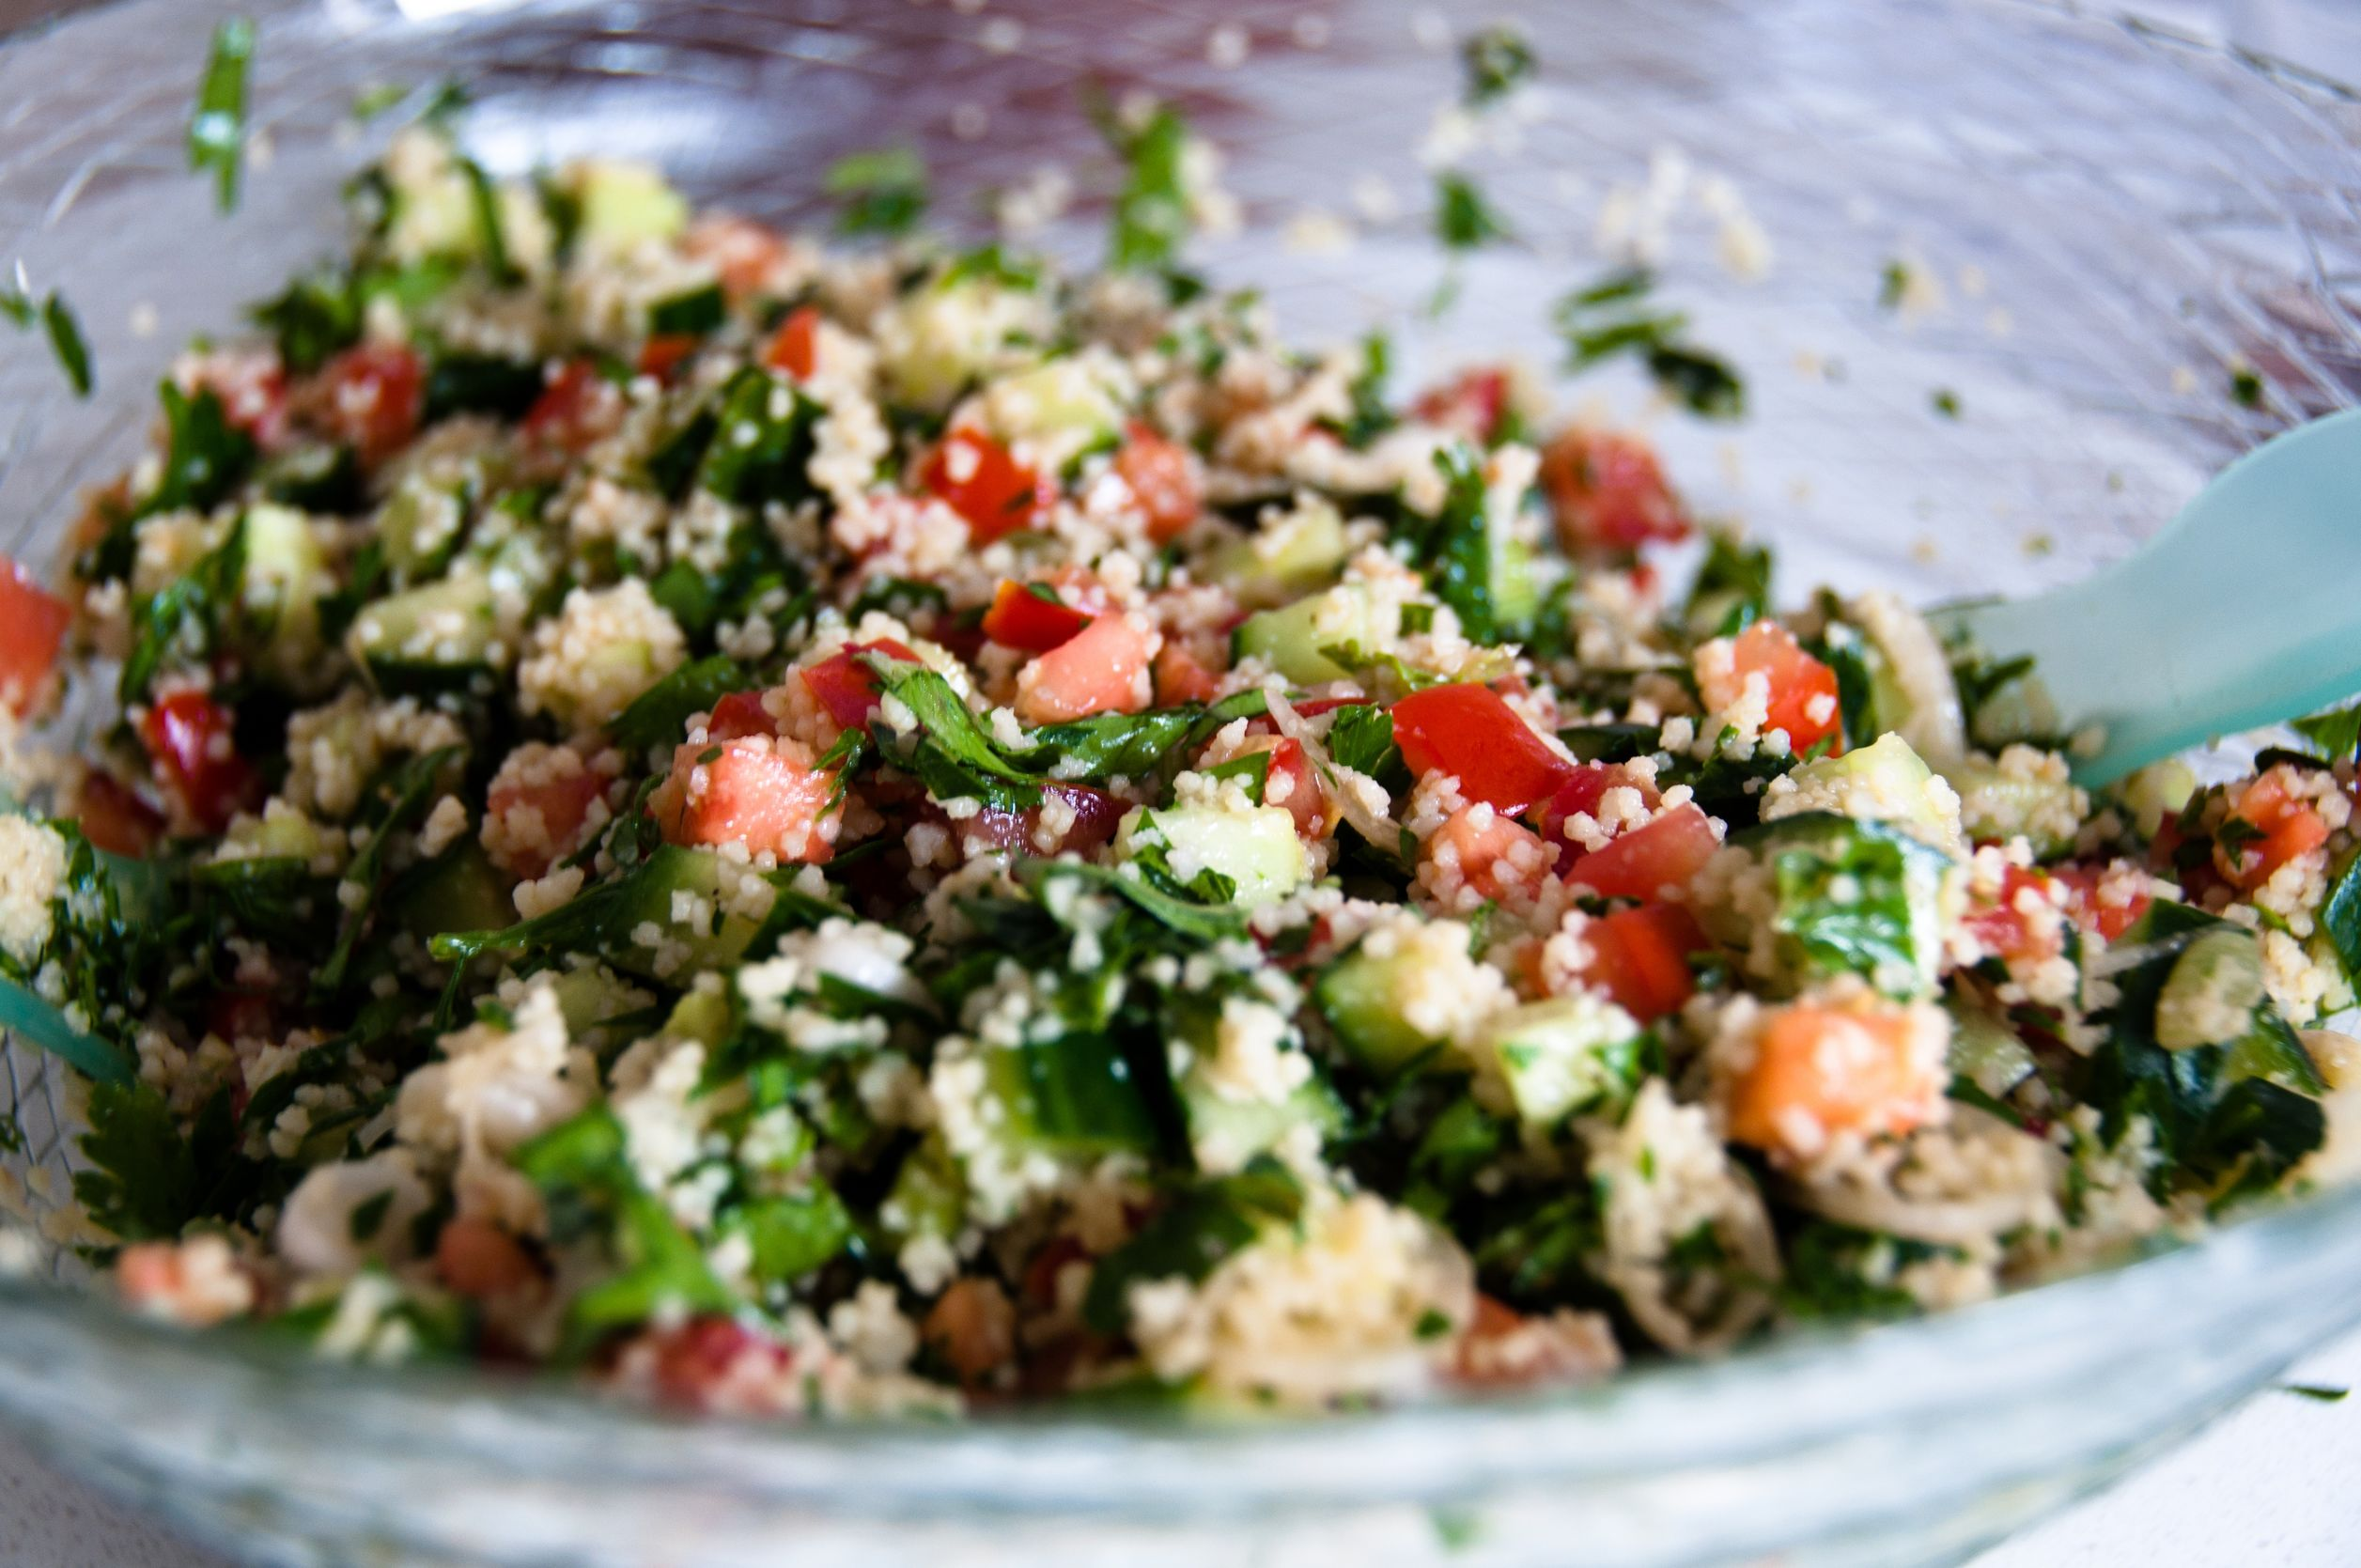 Fonio tabouleh on a plate. Fonio is a grain that has health benefits. Fonio recipes are in the article